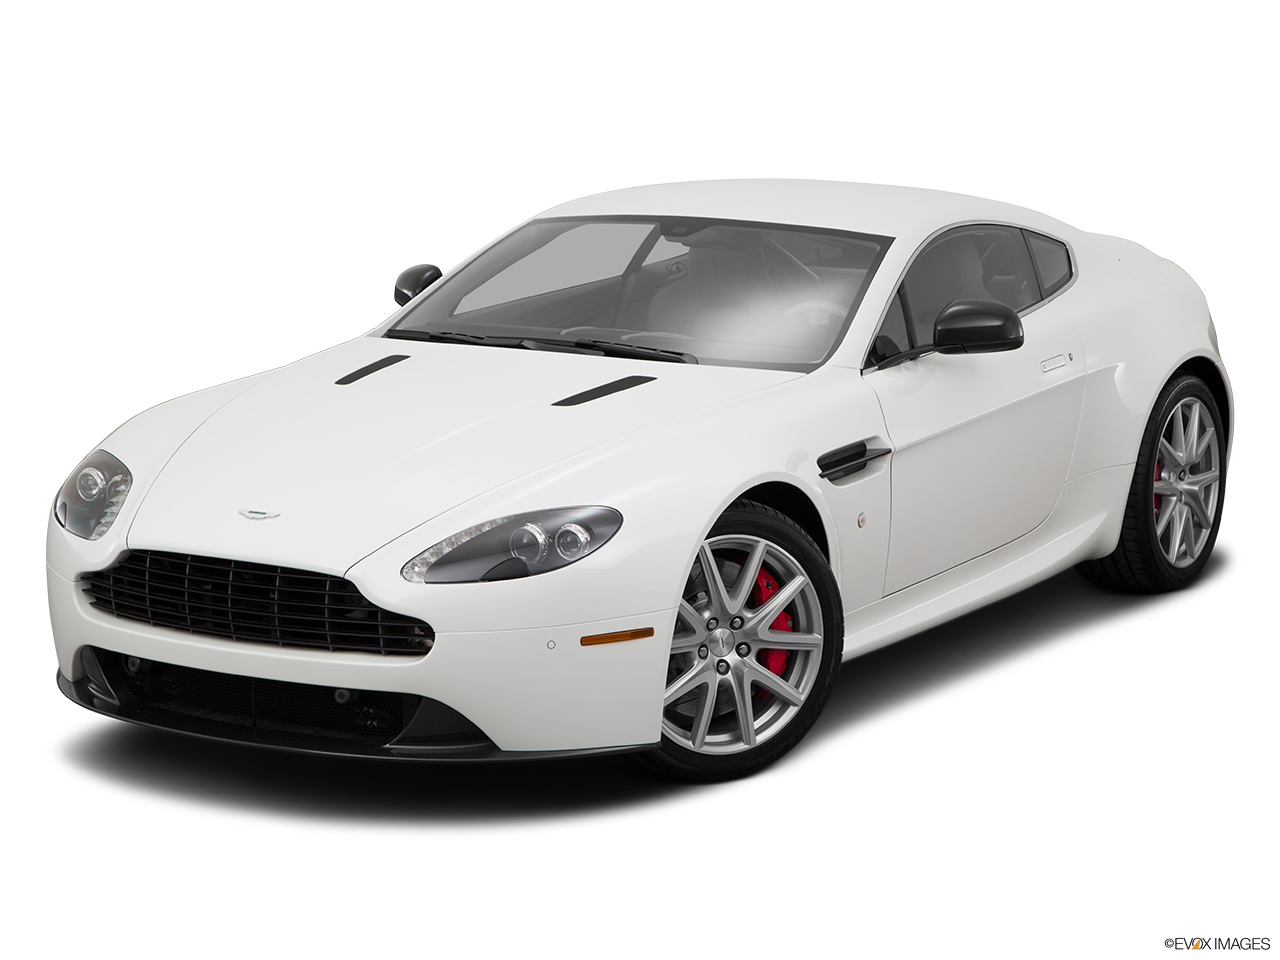 2015 Aston Martin V8 Vantage Gt Coupe Front Angle View 2015